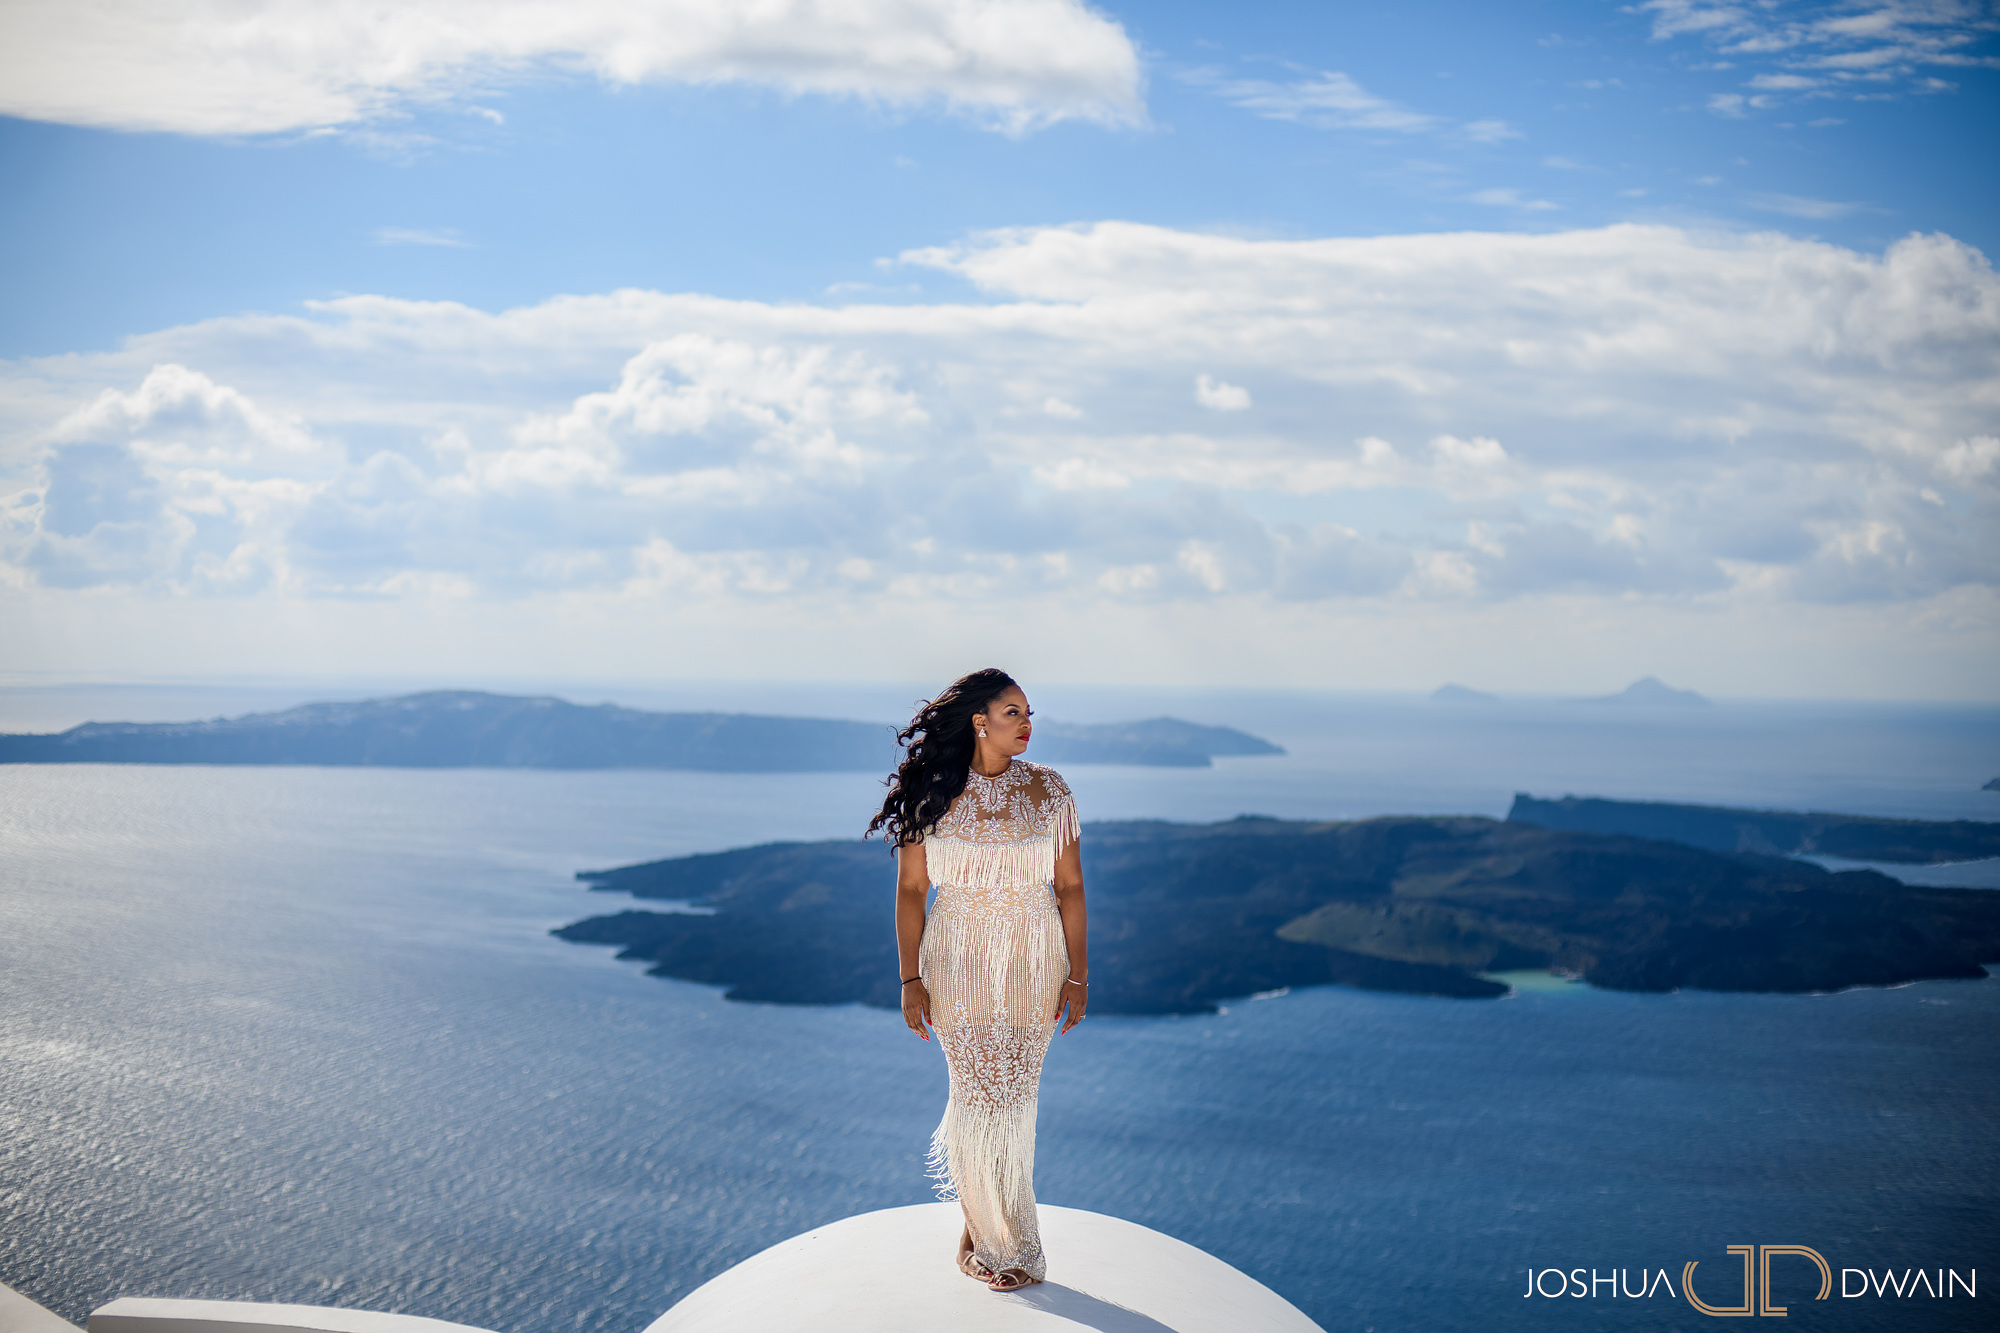 ekene-issac-23-santorini-oia-thira-greece-wedding-engagement-photos-african-american-destination-photographer-joshua-dwain